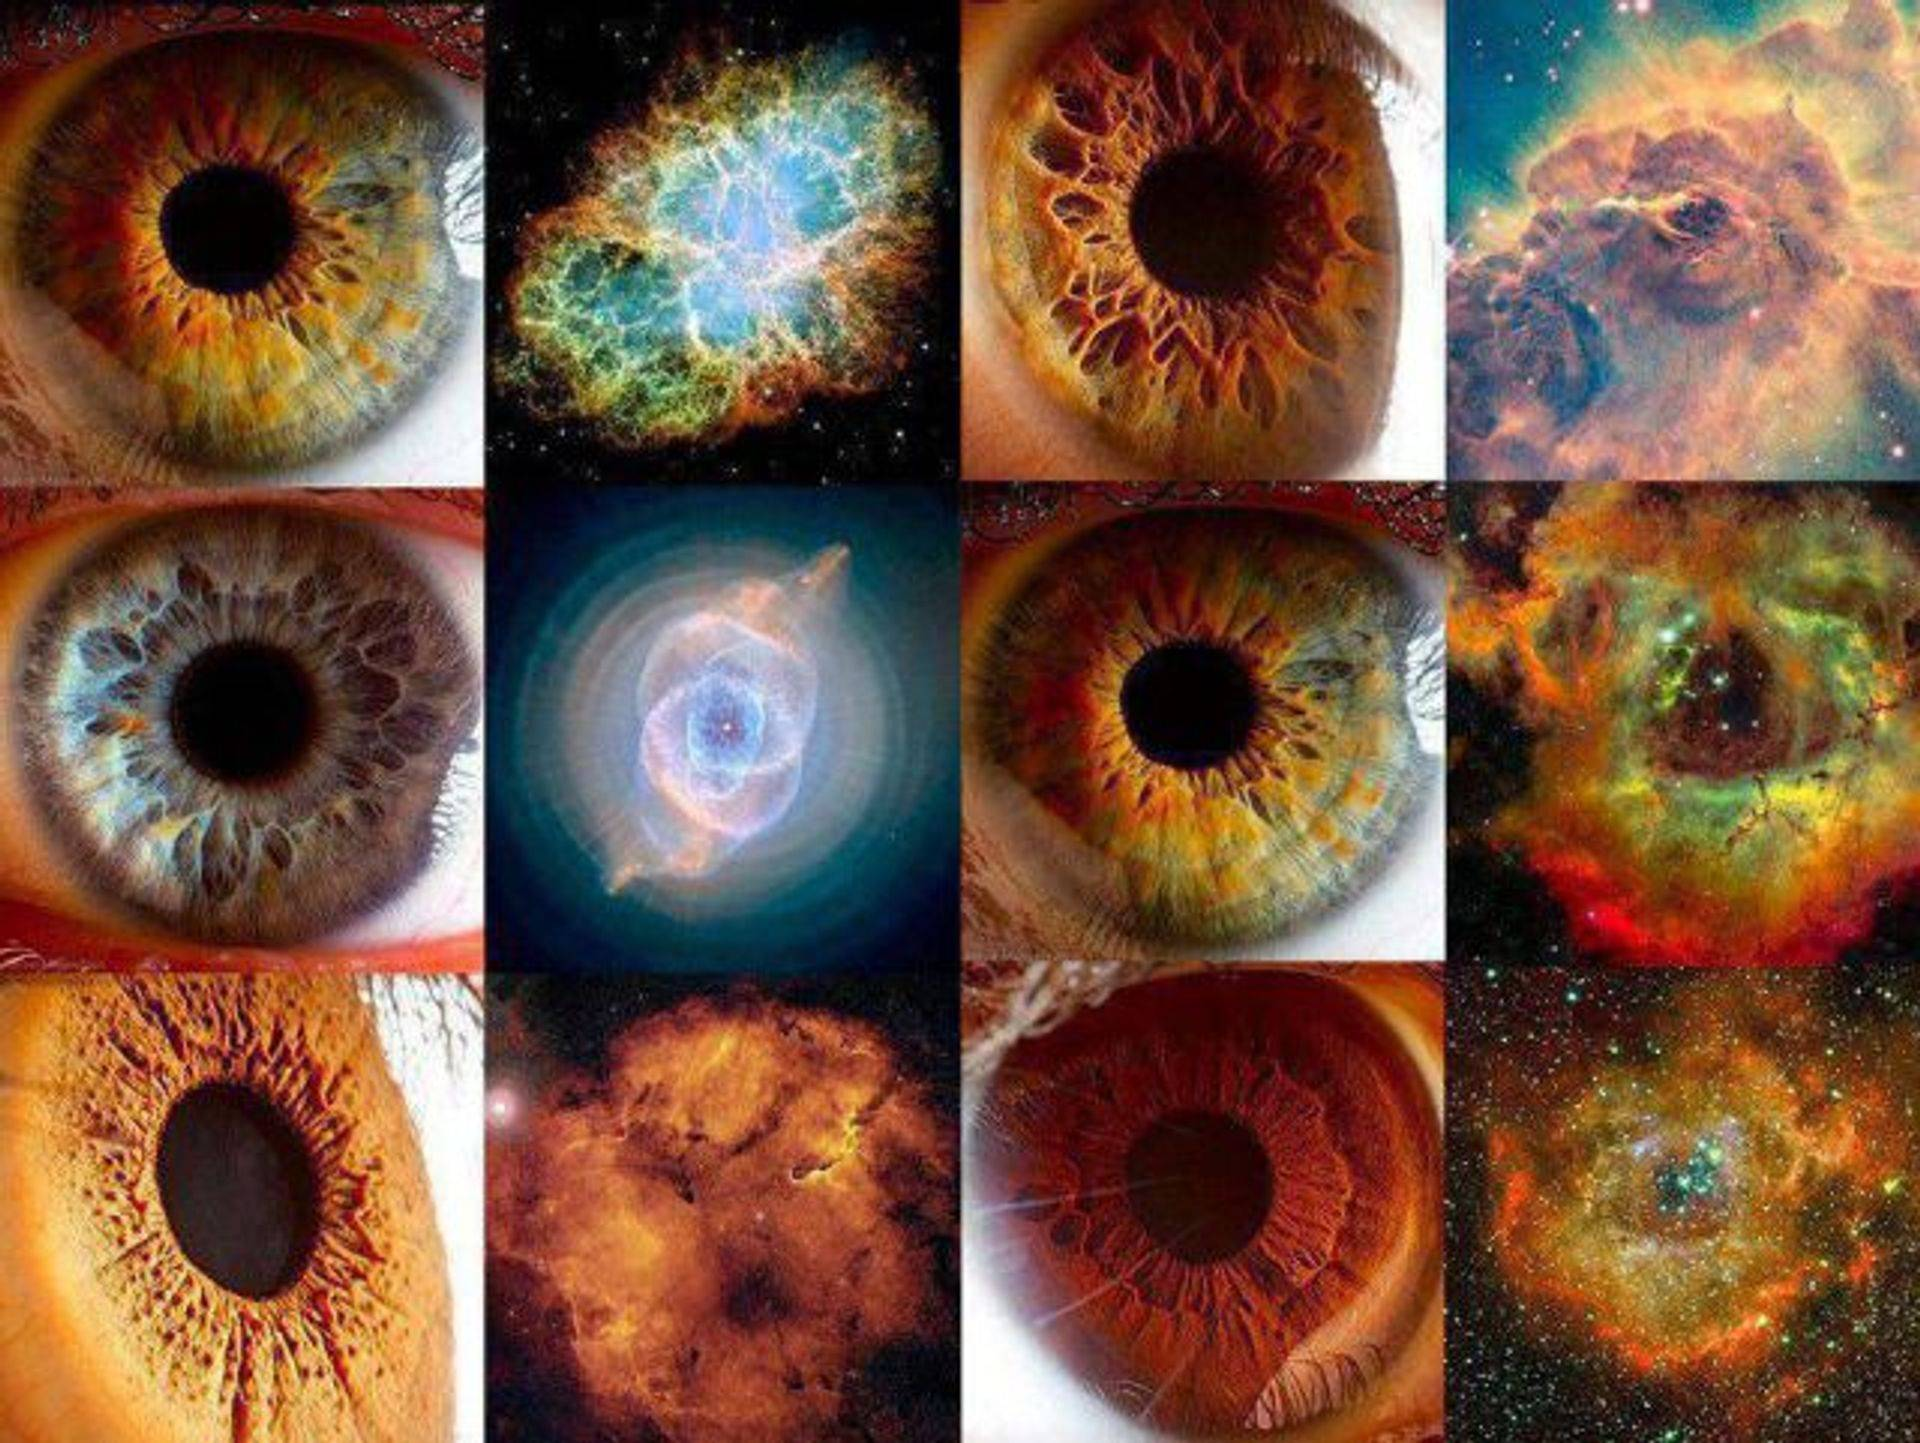 eye and star galaxies macrocosm microcosm universe is mental